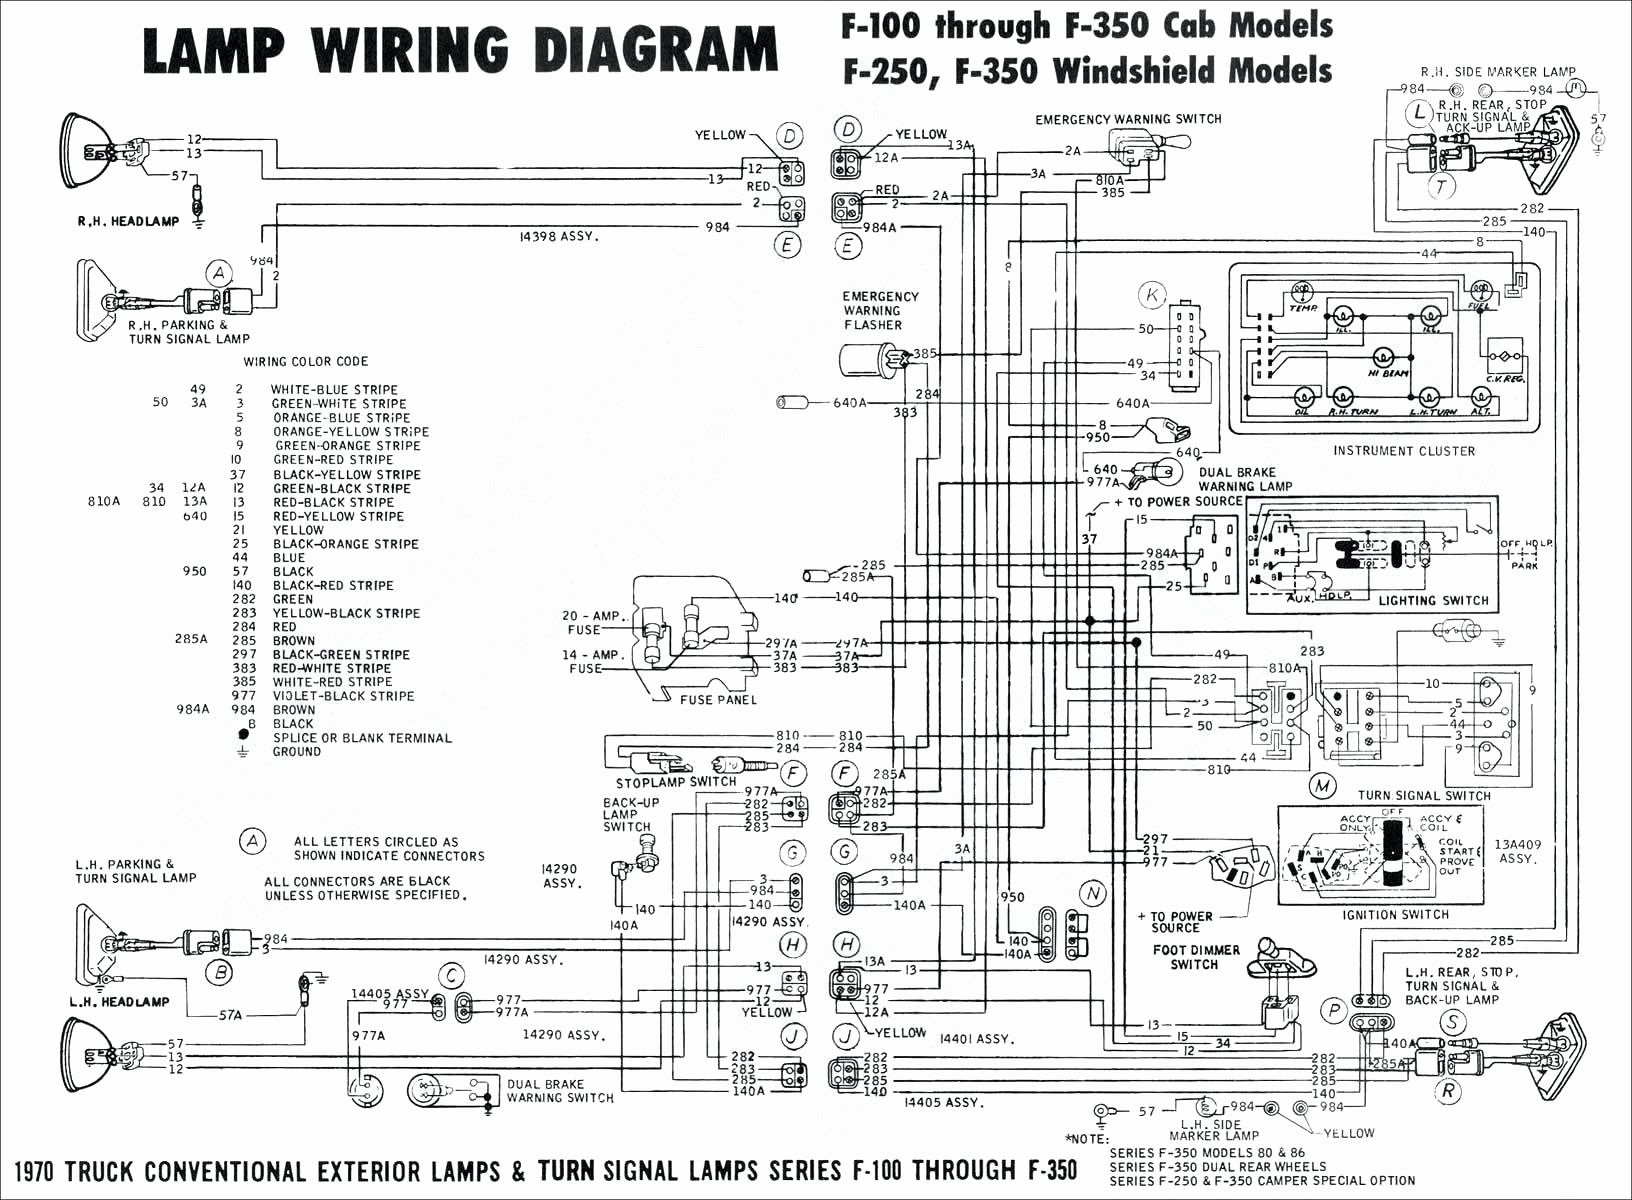 Light Switch Wiring Diagram New Zealand | Download Wiring Diagram on cm trailer lights, texas bragg wiring diagram, wells cargo wiring diagram, forest river wiring diagram, typical rv wiring diagram, haulmark wiring diagram, exiss wiring diagram, hitch wiring diagram, interior trailer lighting diagram, cm trailer accessories, trailer electrical connectors diagram, 4-way trailer light diagram, kiefer wiring diagram, cm trailer parts, coleman wiring diagram, featherlite wiring diagram,